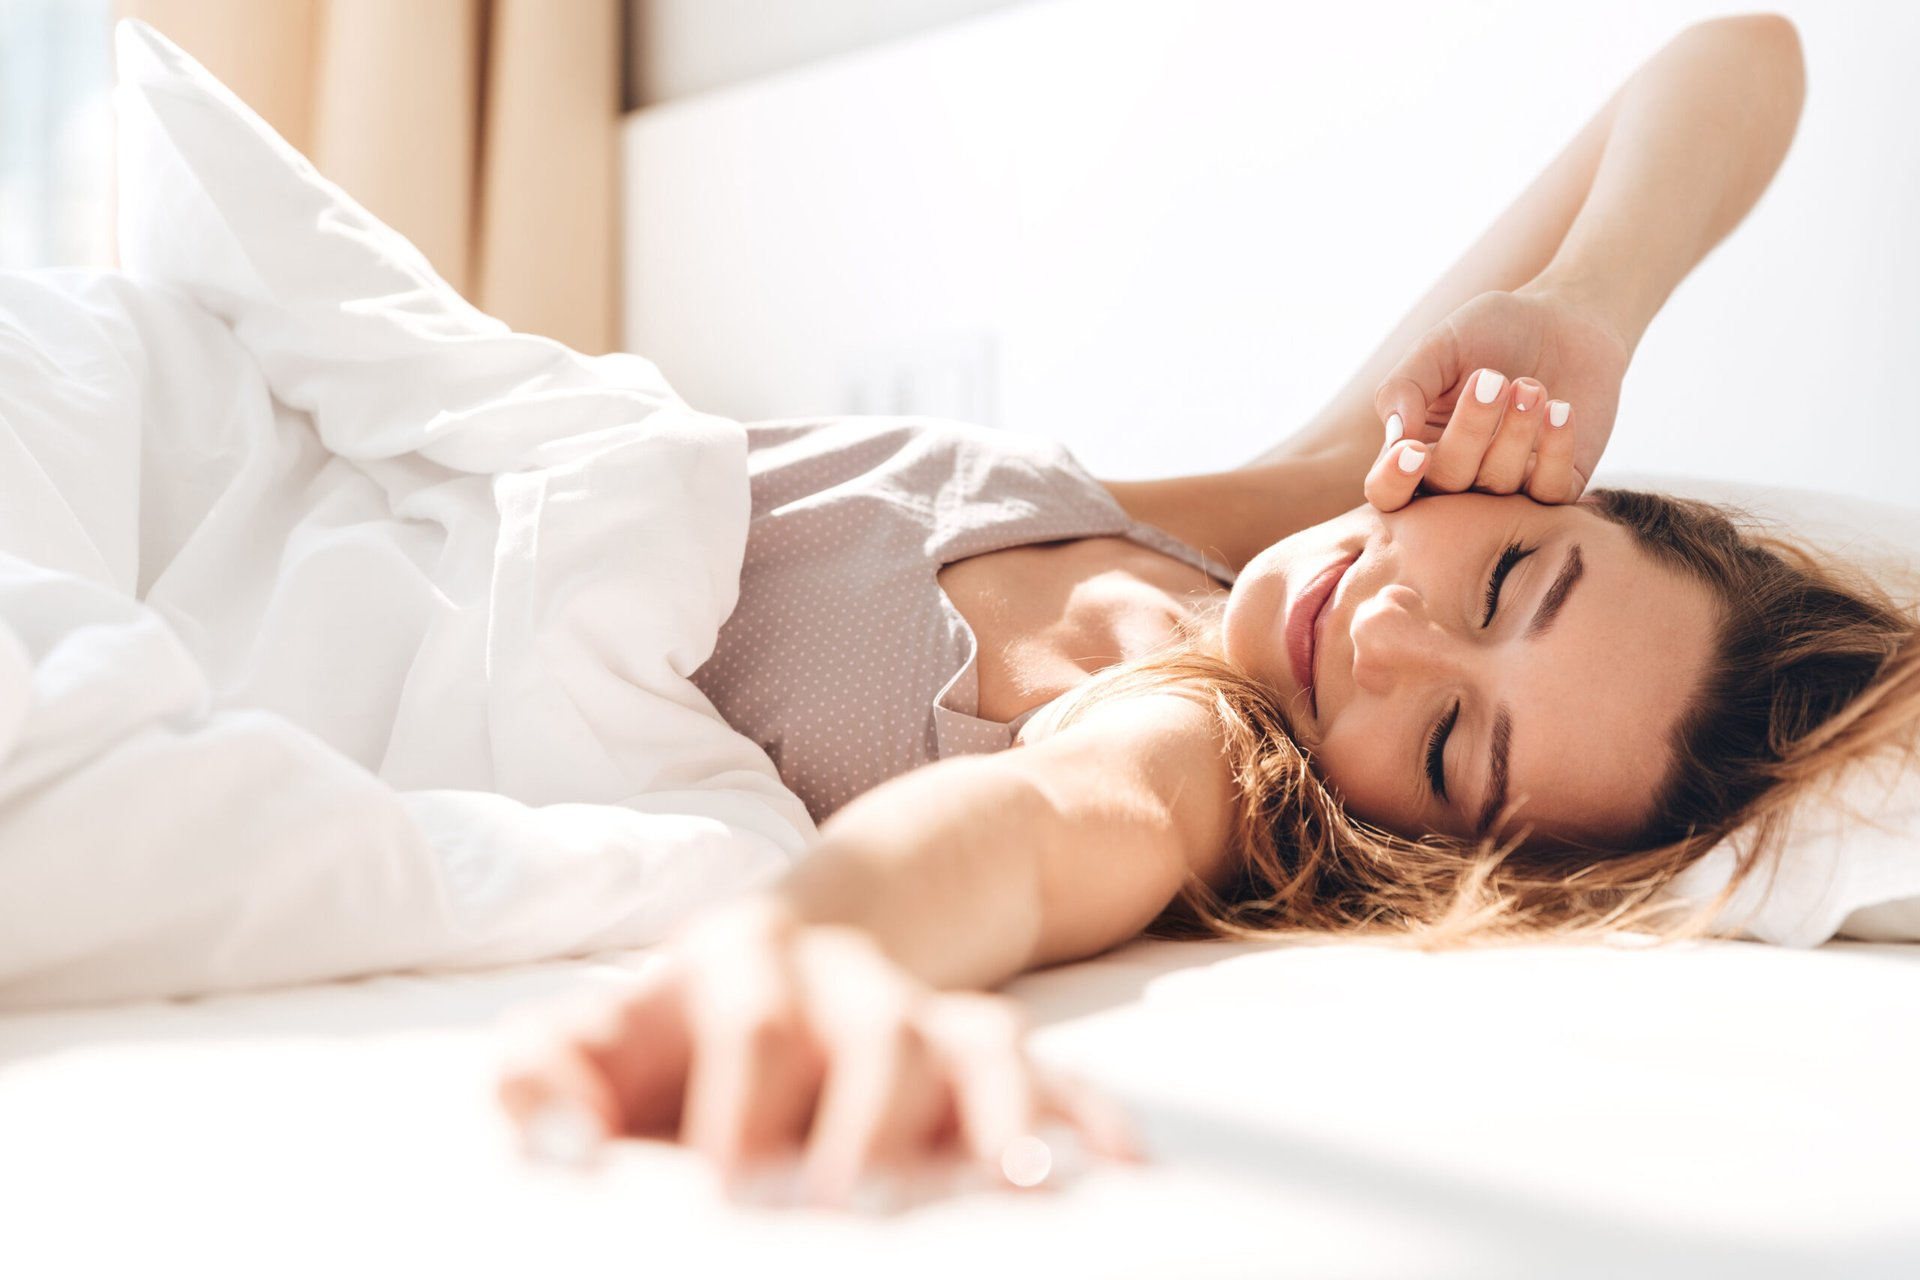 Happy woman sleeping peacefully in bed in the morning